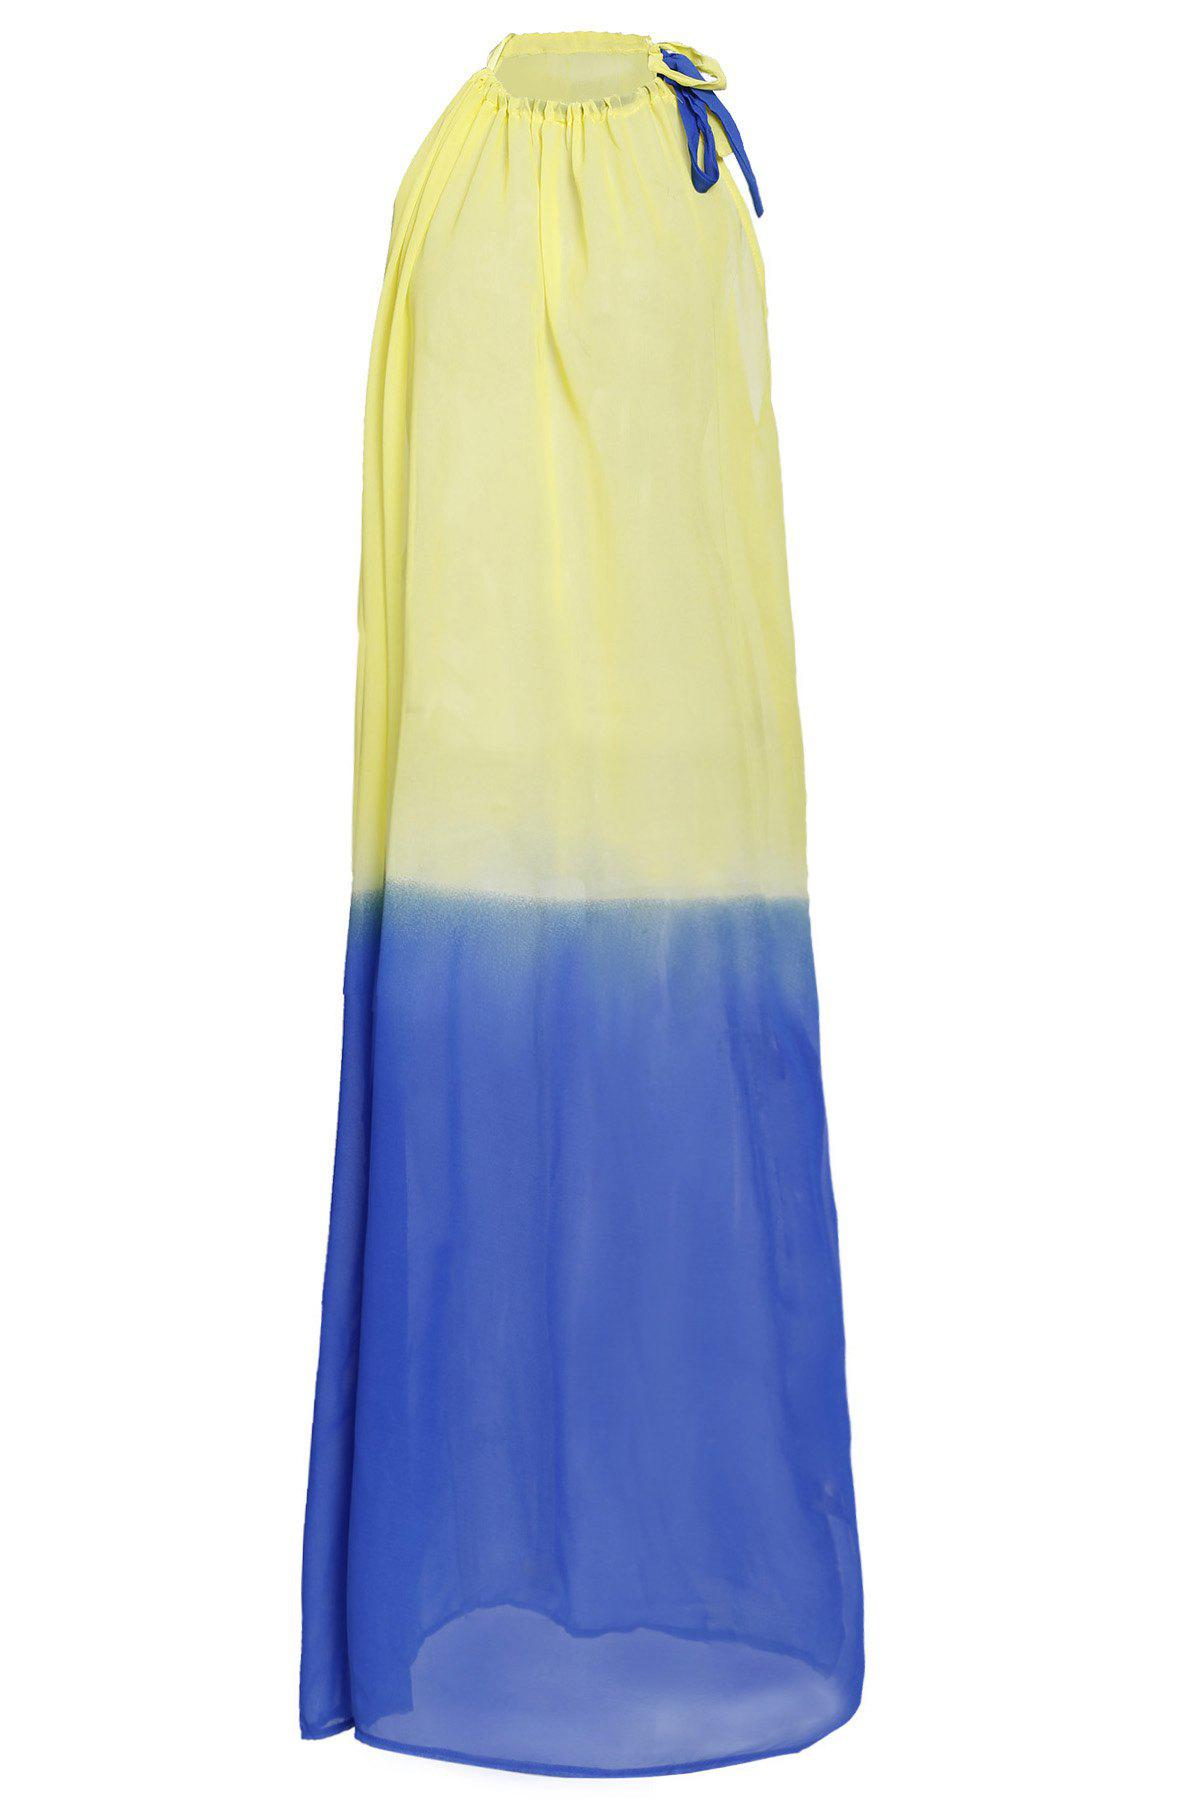 Refreshing Women's Round Collar Ombre Cover-Up - BLUE/YELLOW S